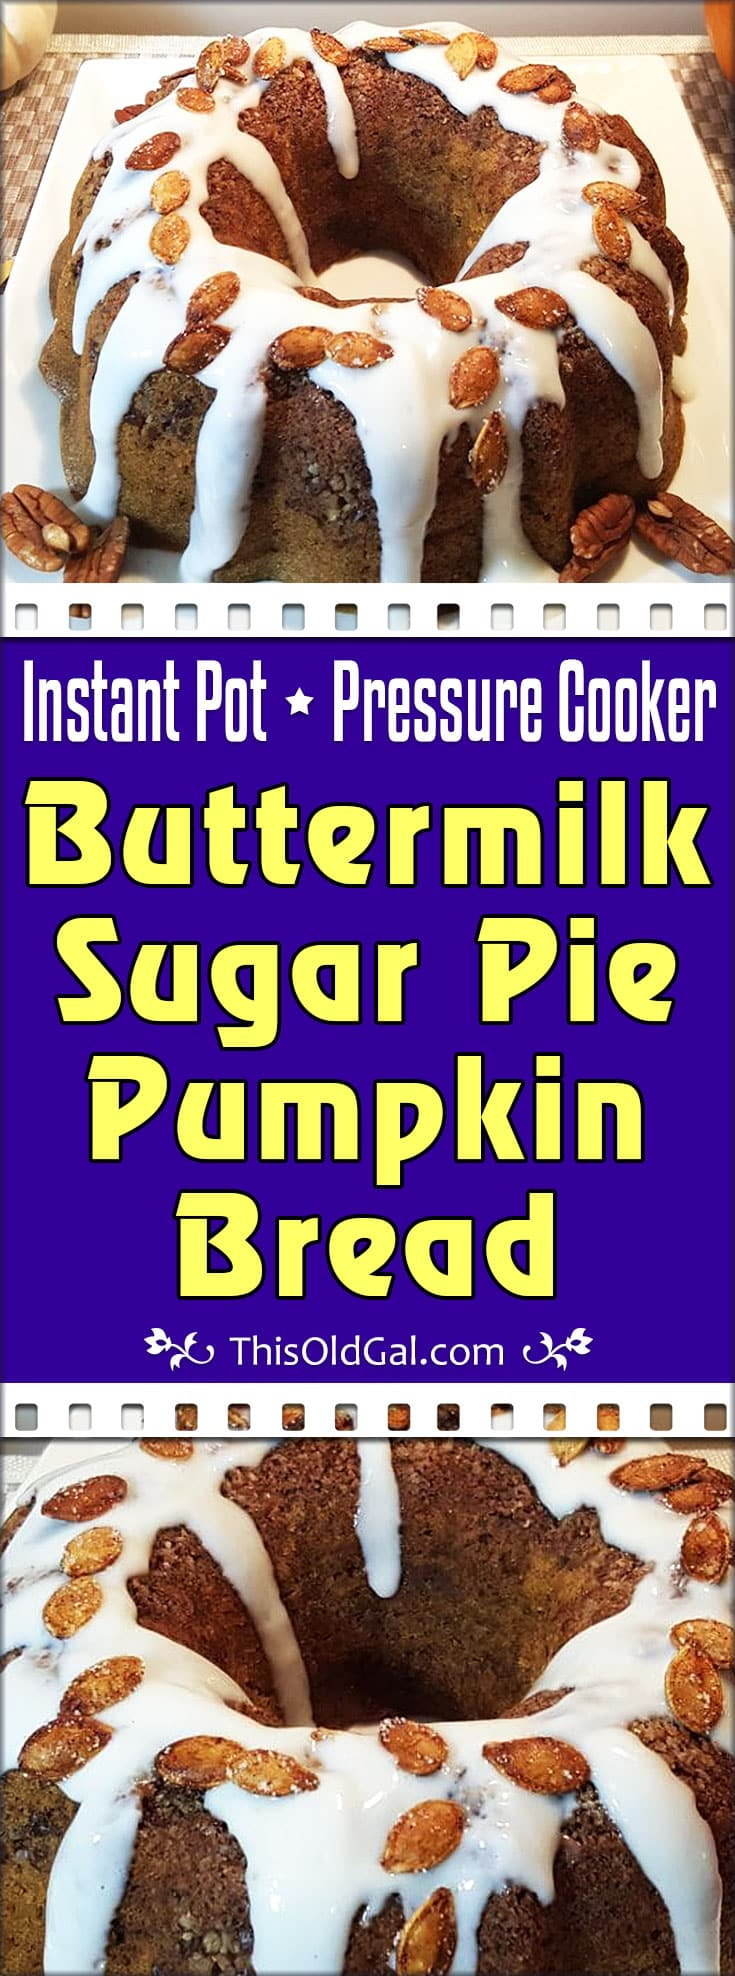 Pressure Cooker Buttermilk Sugar Pie Pumpkin Bread